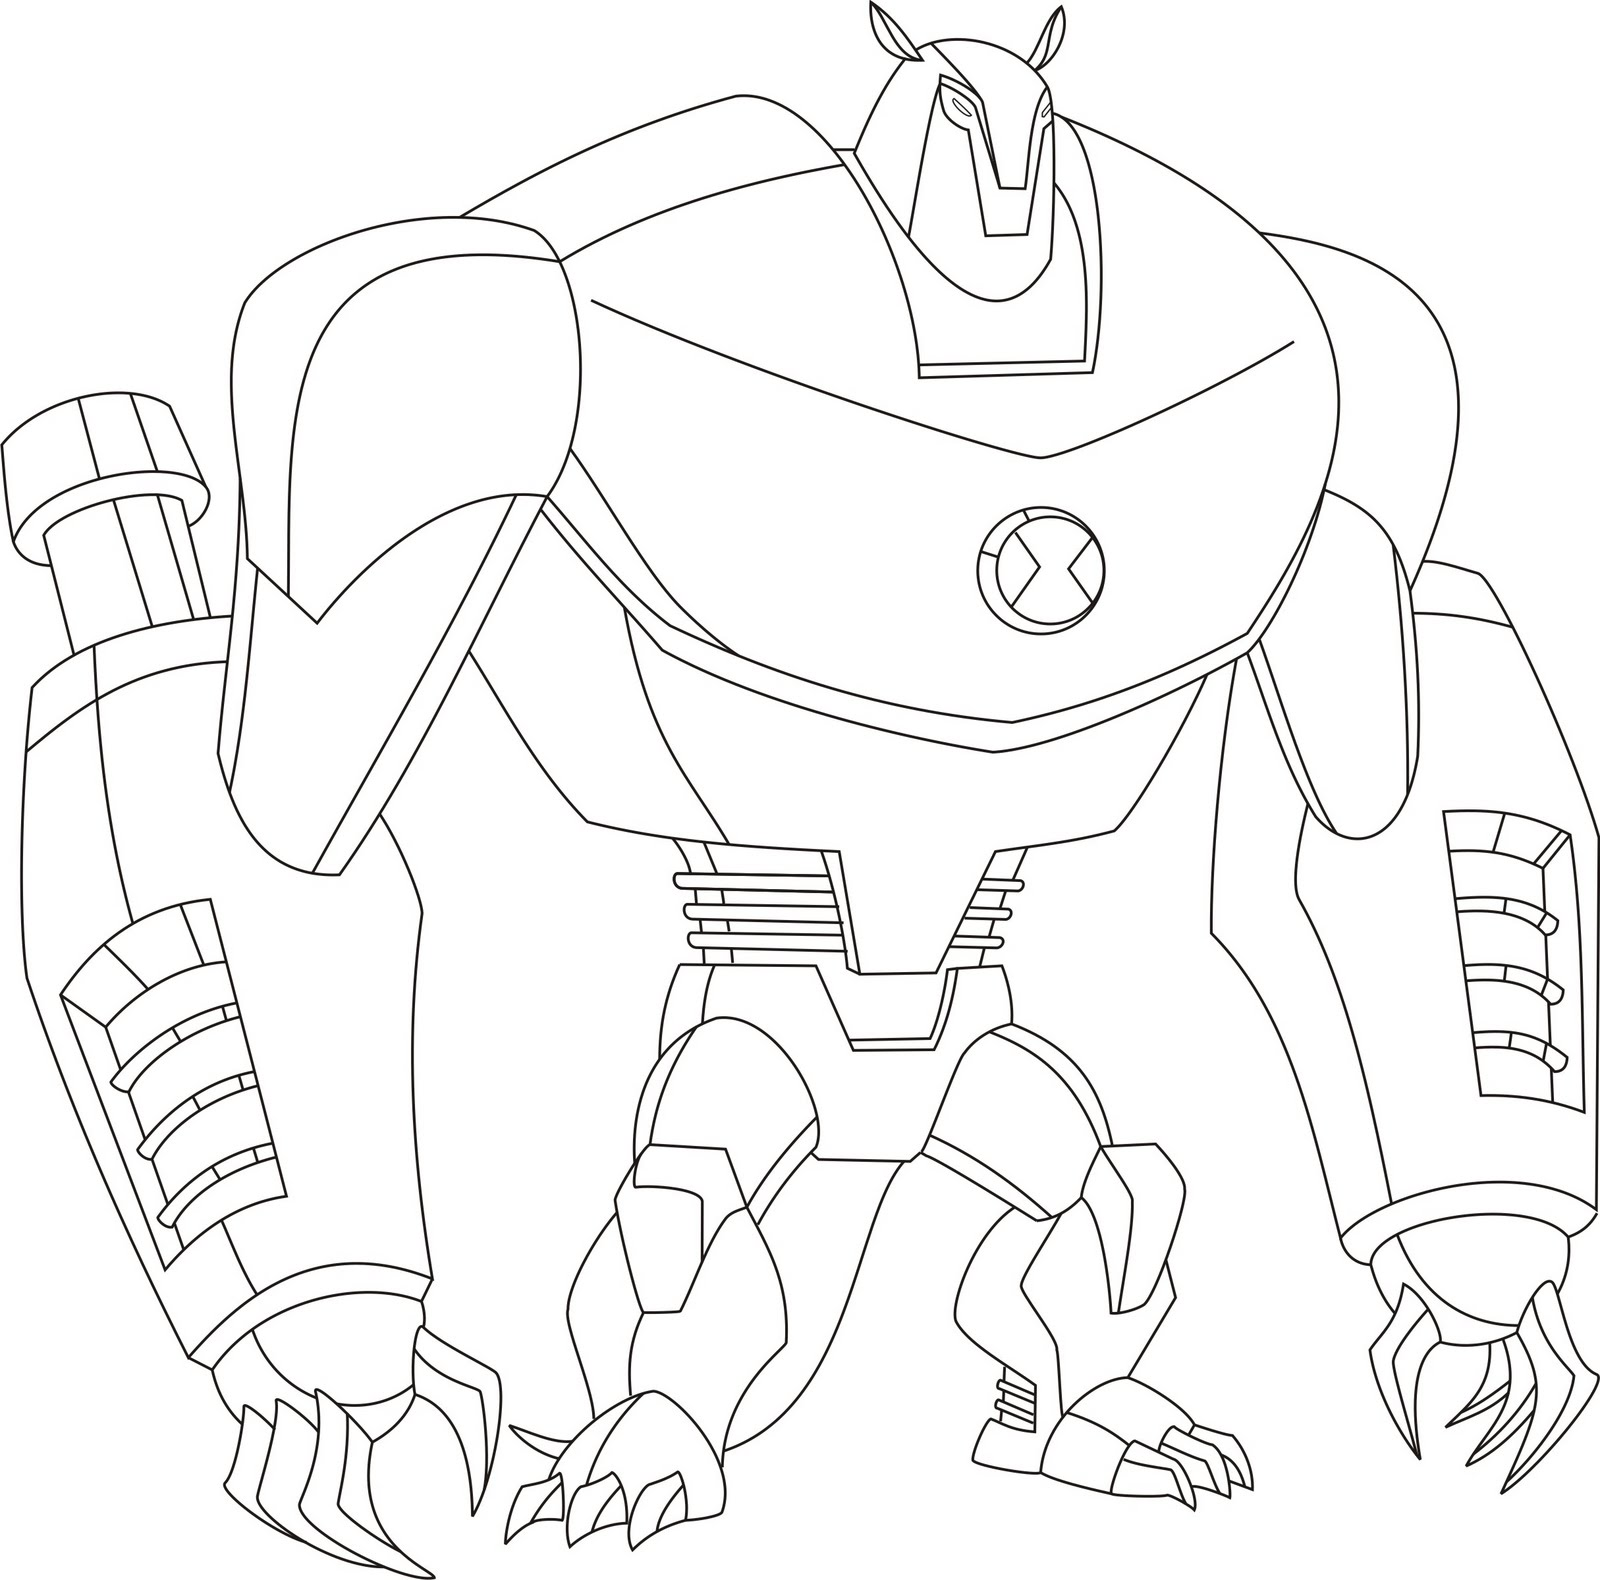 Robot Minion Coloring Page as well Wal 4 moreover Rose Tattoos further Desenhos Para Colorir Super Girl in addition Eyes Googly 12238441. on big cartoon spider